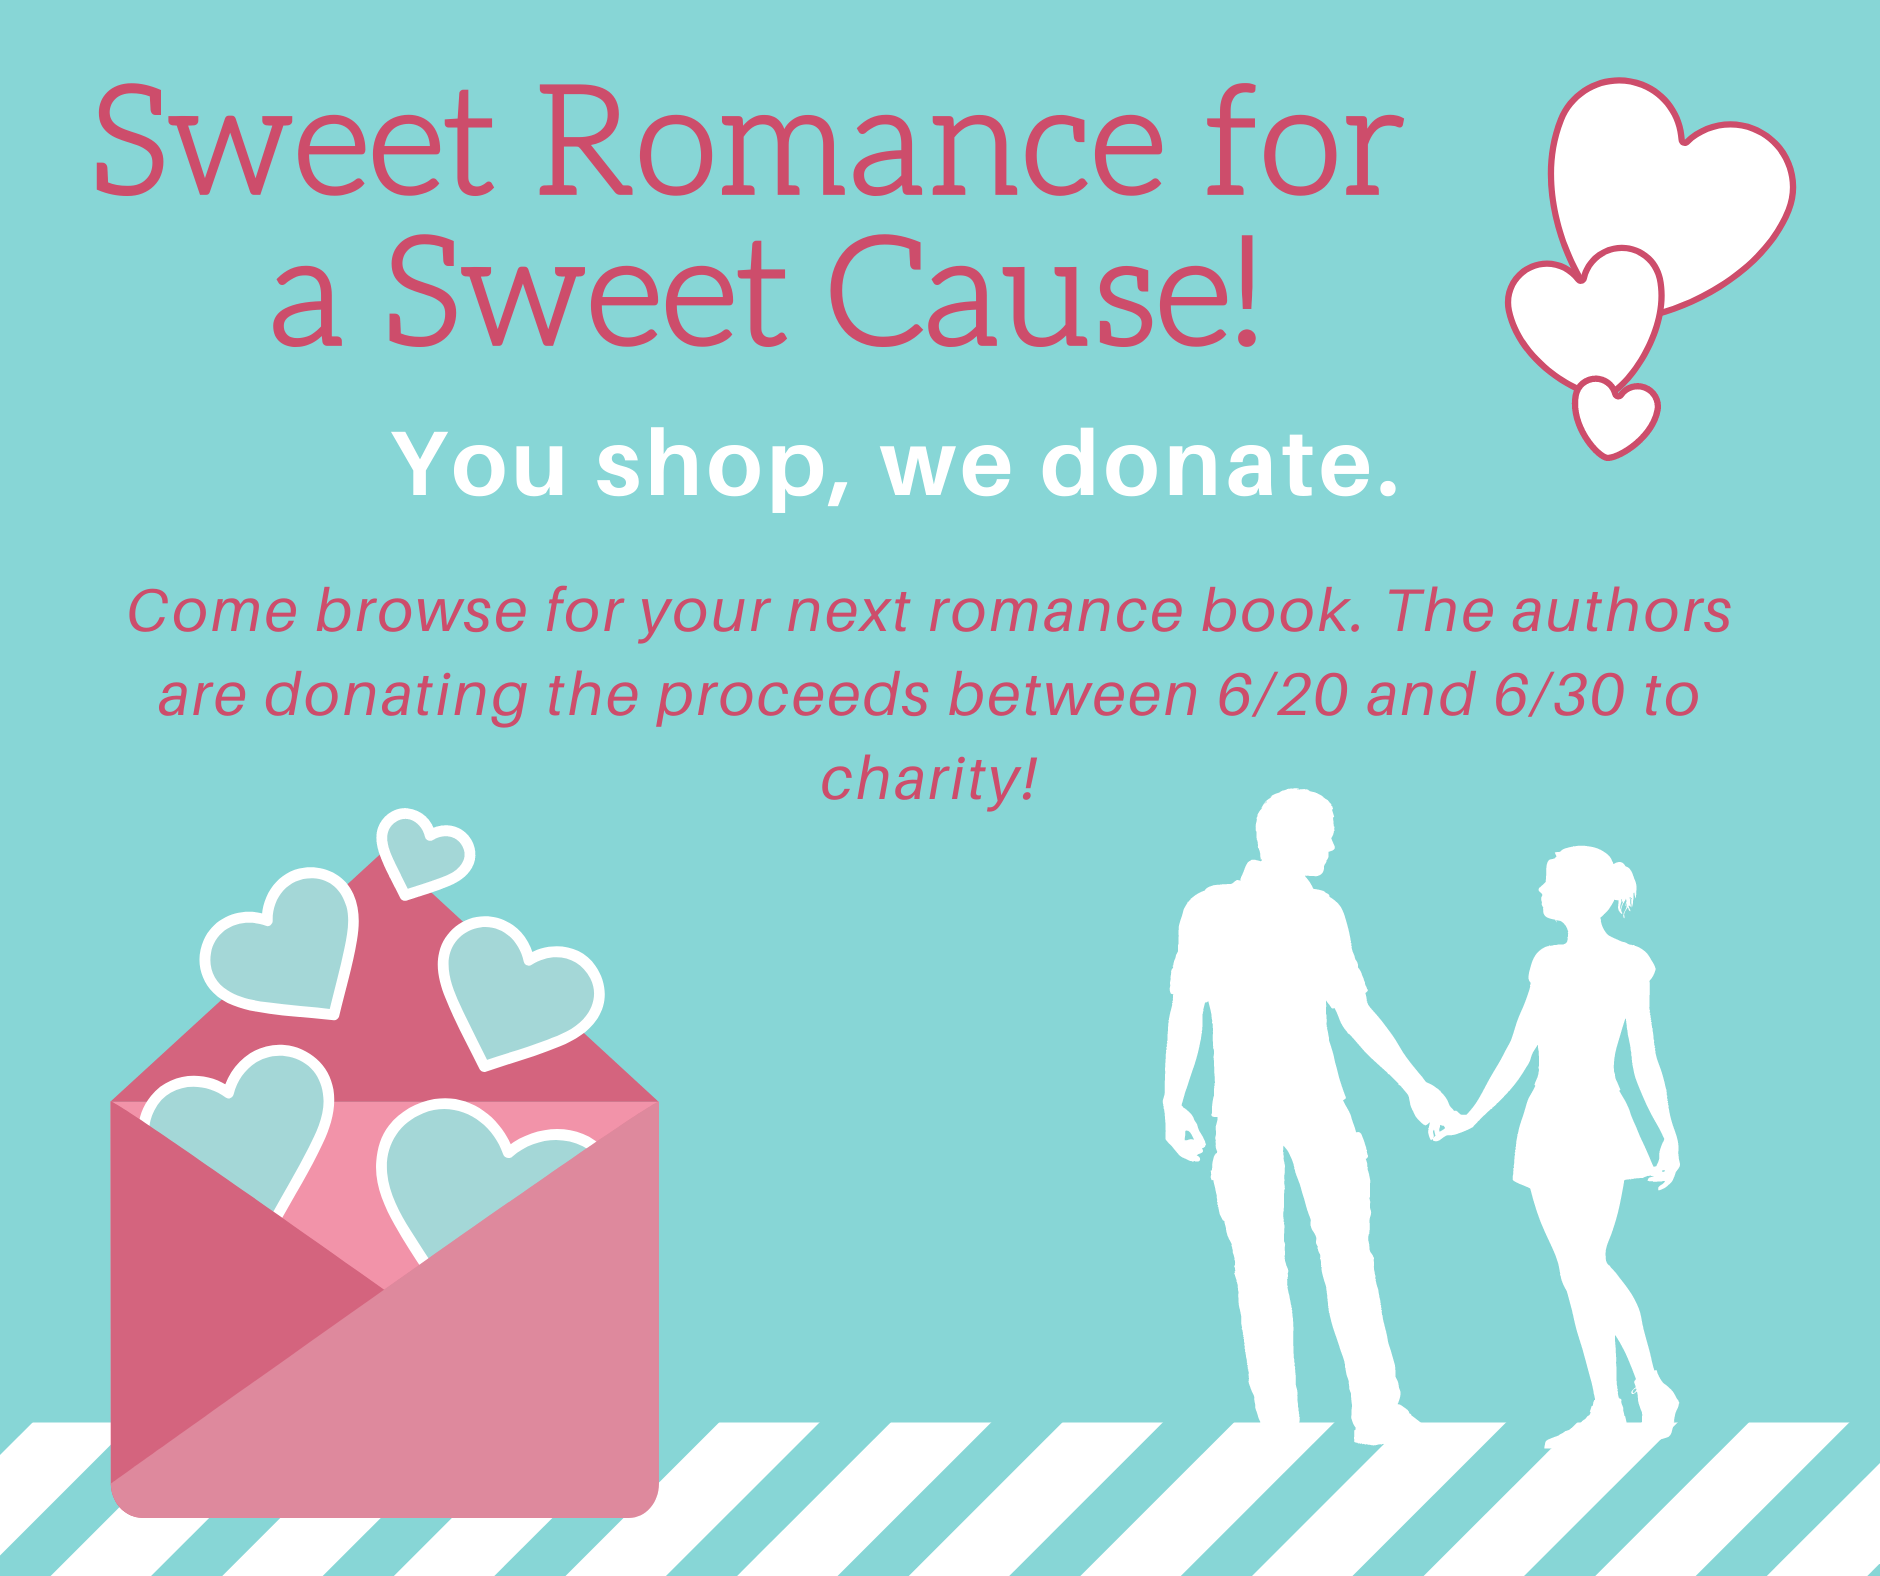 Sweet Romances for a Sweet Cause